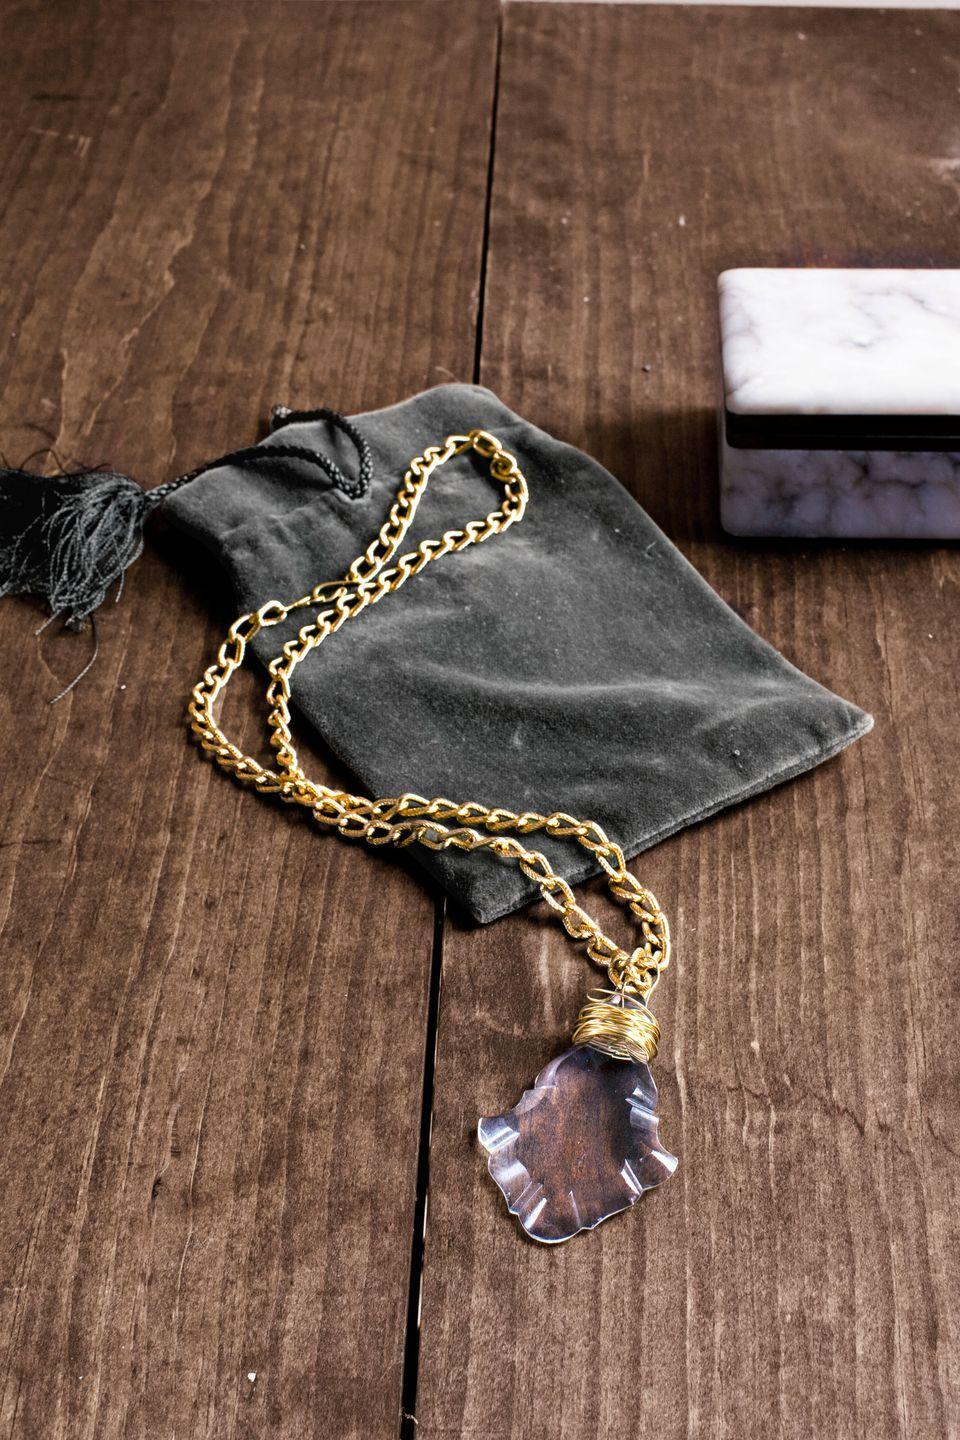 """<p>A dime a dozen at flea markets and antiques shops, cast-off prisms make for stunning pendants<em>.</em> First, use pliers to remove any existing wiring. Then tightly wrap <a href=""""https://www.amazon.com/Tarnish-Resistant-Craft-Wire-Gauge/dp/B003N0PFNG?tag=syn-yahoo-20&ascsubtag=%5Bartid%7C10050.g.645%5Bsrc%7Cyahoo-us"""" rel=""""nofollow noopener"""" target=""""_blank"""" data-ylk=""""slk:22-gauge gold craft wire"""" class=""""link rapid-noclick-resp"""">22-gauge gold craft wire</a> around the top of the prism, as shown below. Form a wire loop for your necklace chain; then, using pliers, cut the wire two inches past the loop before securing its end inside the wrapped wire. String a length of <a href=""""https://go.redirectingat.com?id=74968X1596630&url=https%3A%2F%2Fwww.etsy.com%2Flisting%2F152318849%2F32ft-10m-of-gold-tone-extension-chain&sref=https%3A%2F%2Fwww.countryliving.com%2Fdiy-crafts%2Ftips%2Fg645%2Fcrafty-christmas-presents-ideas%2F"""" rel=""""nofollow noopener"""" target=""""_blank"""" data-ylk=""""slk:gold-plated chain"""" class=""""link rapid-noclick-resp"""">gold-plated chain</a> through the wire loop. Attach a <a href=""""https://www.amazon.com/dp/B002TGYSZQ/ref=asc_df_B002TGYSZQ5093960/?tag=syn-yahoo-20&ascsubtag=%5Bartid%7C10050.g.645%5Bsrc%7Cyahoo-us"""" rel=""""nofollow noopener"""" target=""""_blank"""" data-ylk=""""slk:gold S hook"""" class=""""link rapid-noclick-resp"""">gold S hook</a> to each end of the chain. For a fanciful finish, present the necklace inside a <a href=""""https://www.amazon.com/s/ref=nb_sb_noss_2?url=search-alias%3Daps&field-keywords=velvet+pouch&tag=syn-yahoo-20&ascsubtag=%5Bartid%7C10050.g.645%5Bsrc%7Cyahoo-us"""" rel=""""nofollow noopener"""" target=""""_blank"""" data-ylk=""""slk:velvet pouch"""" class=""""link rapid-noclick-resp"""">velvet pouch</a>.</p><p><strong><a class=""""link rapid-noclick-resp"""" href=""""https://www.amazon.com/Tarnish-Resistant-Craft-Wire-Gauge/dp/B003N0PFNG?tag=syn-yahoo-20&ascsubtag=%5Bartid%7C10050.g.645%5Bsrc%7Cyahoo-us"""" rel=""""nofollow noopener"""" target=""""_blank"""" data-ylk=""""slk:SHOP CRAFT WIRE"""">SHOP CRAFT WIRE</a"""